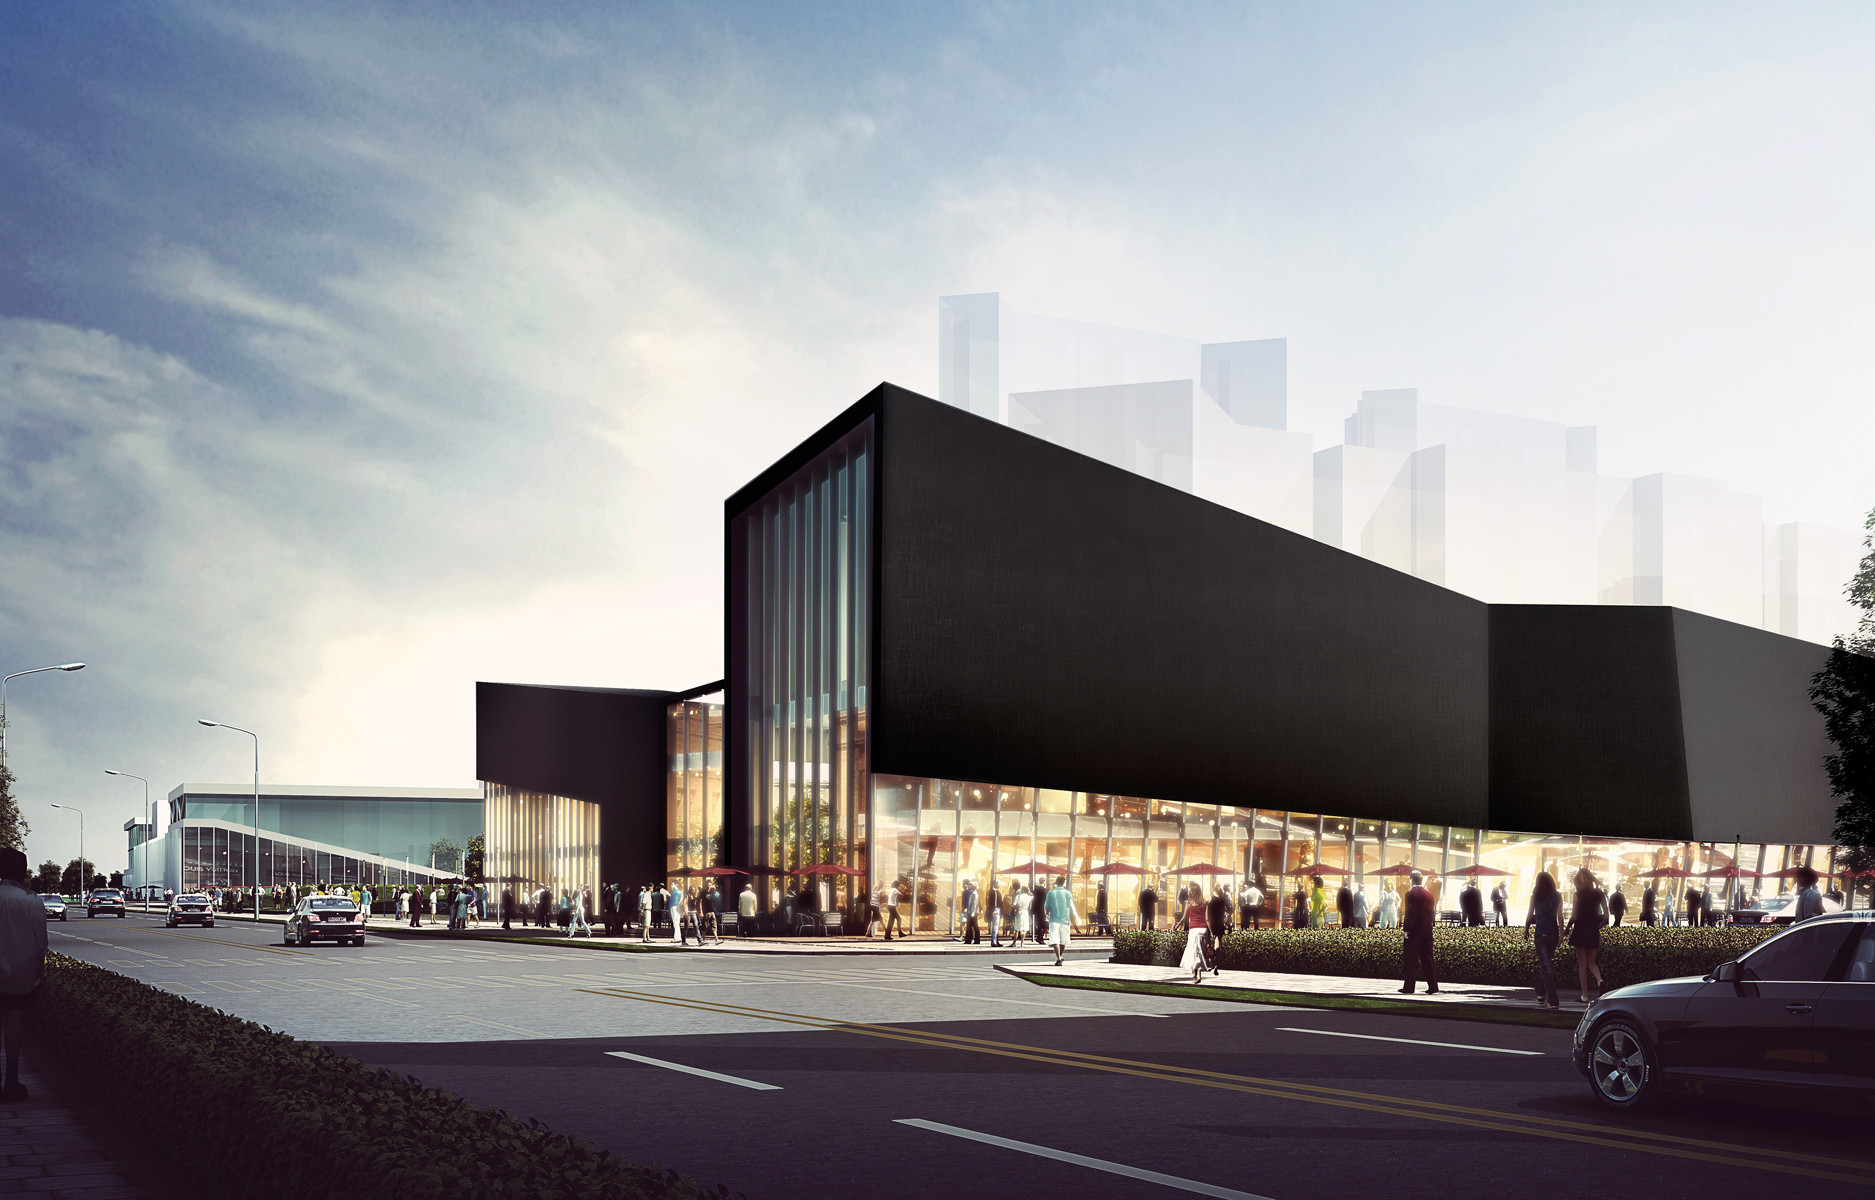 Rta office designs service center for china 39 s for Office design expo